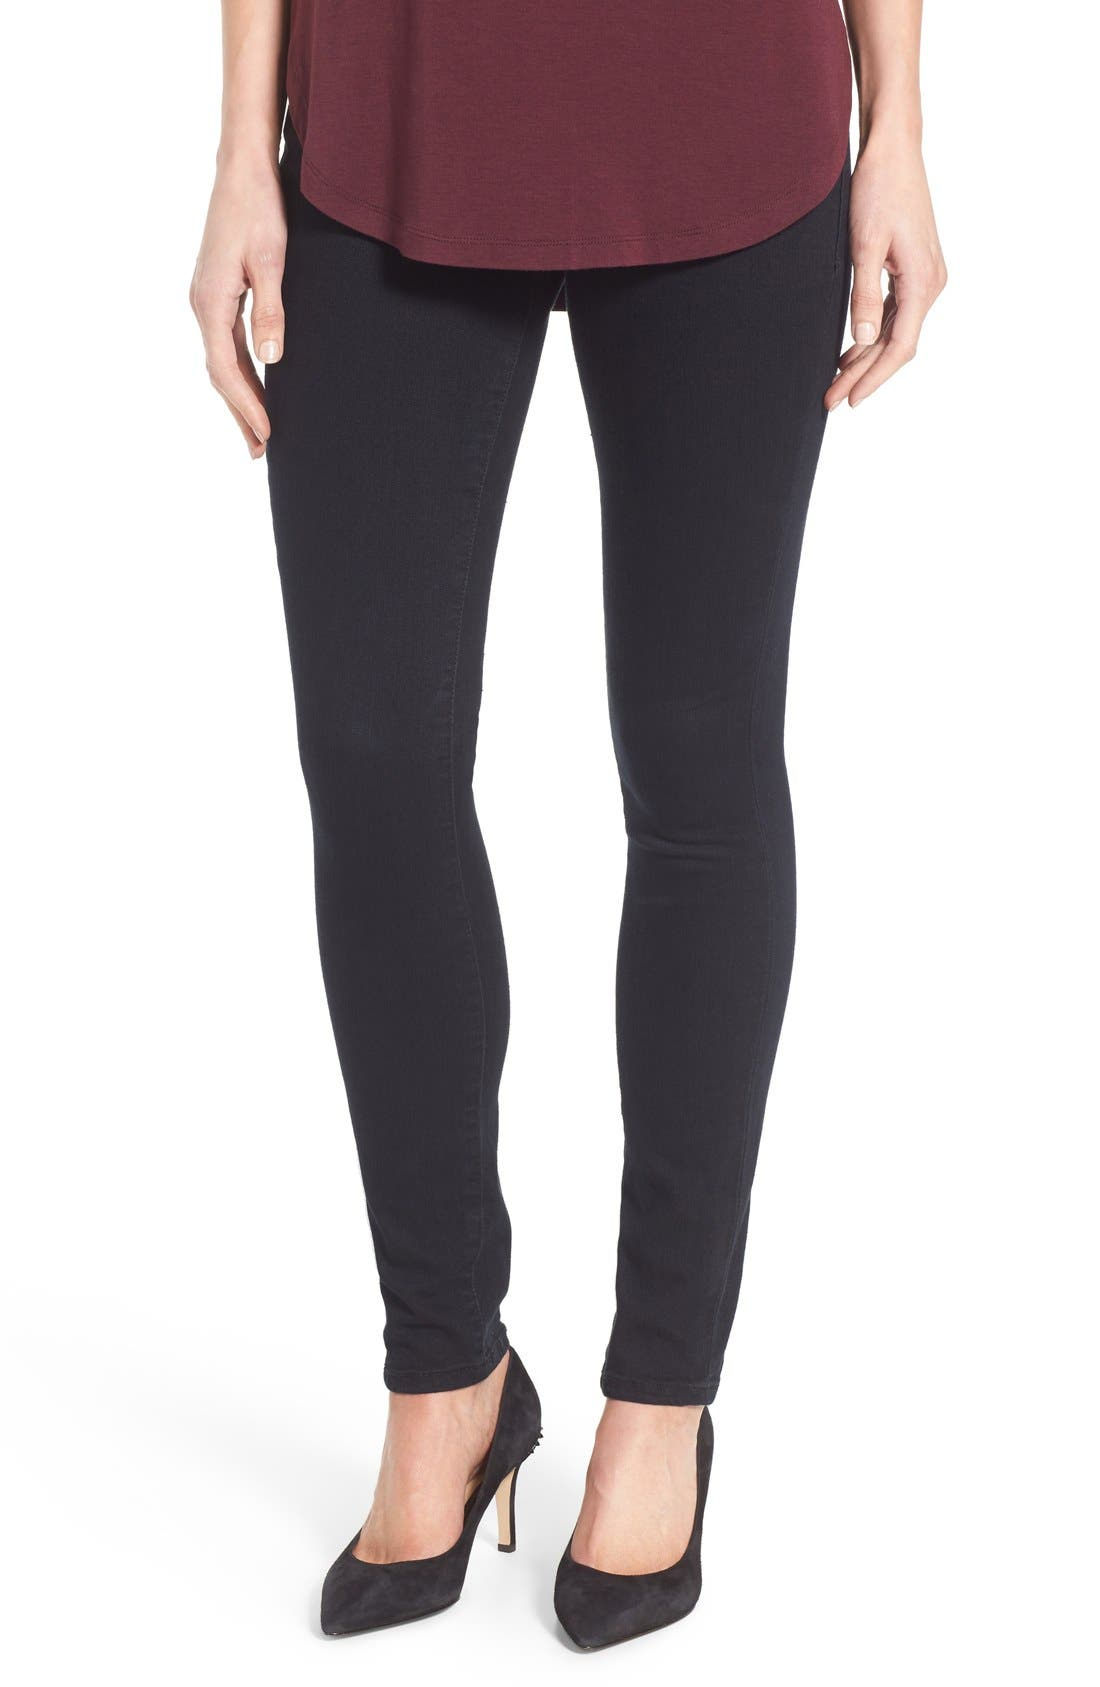 JAG JEANS 'Nora' Pull-On Stretch Skinny Jeans